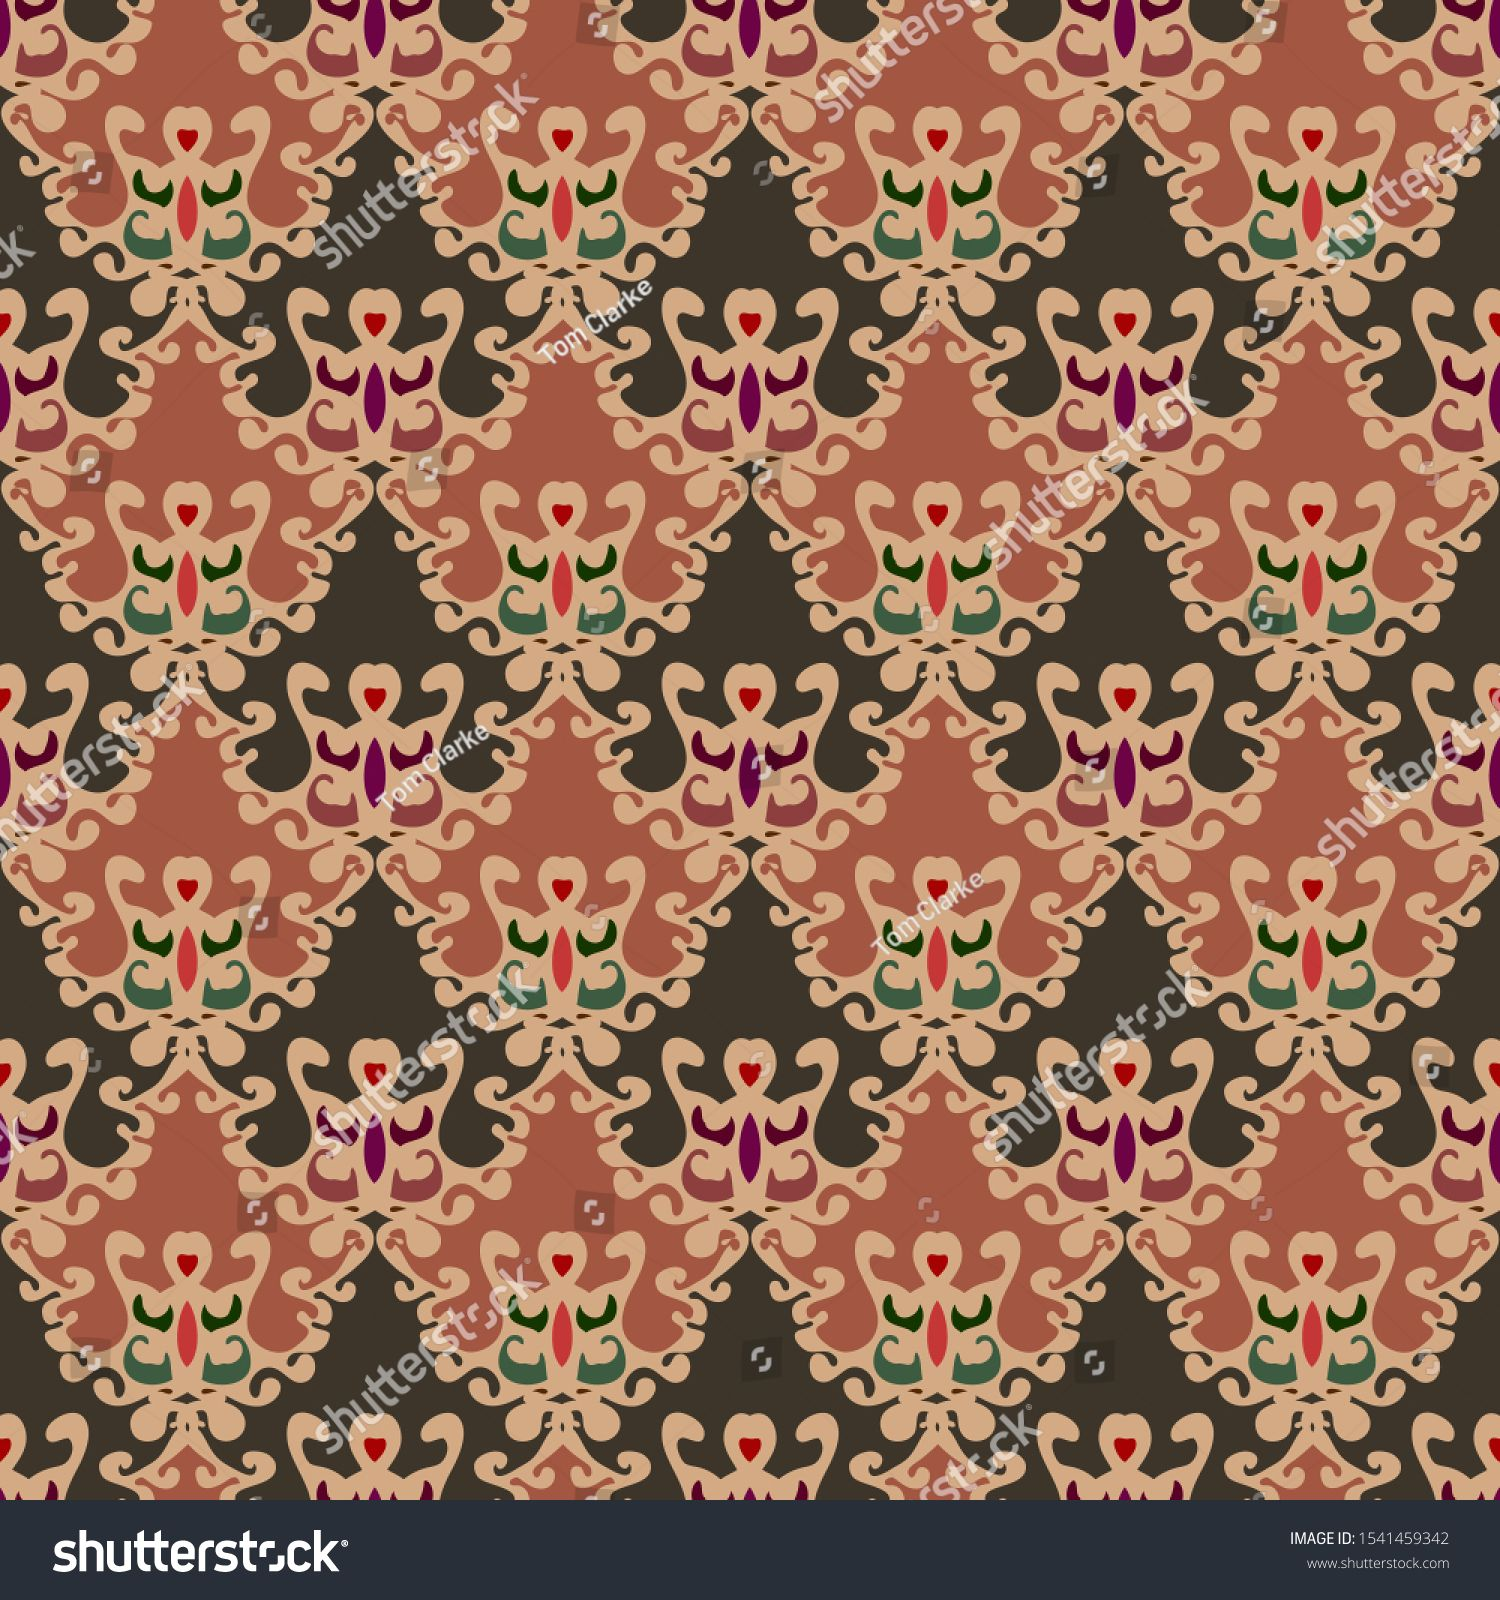 A virtual design print and pattern with refined fine decorative elementsn